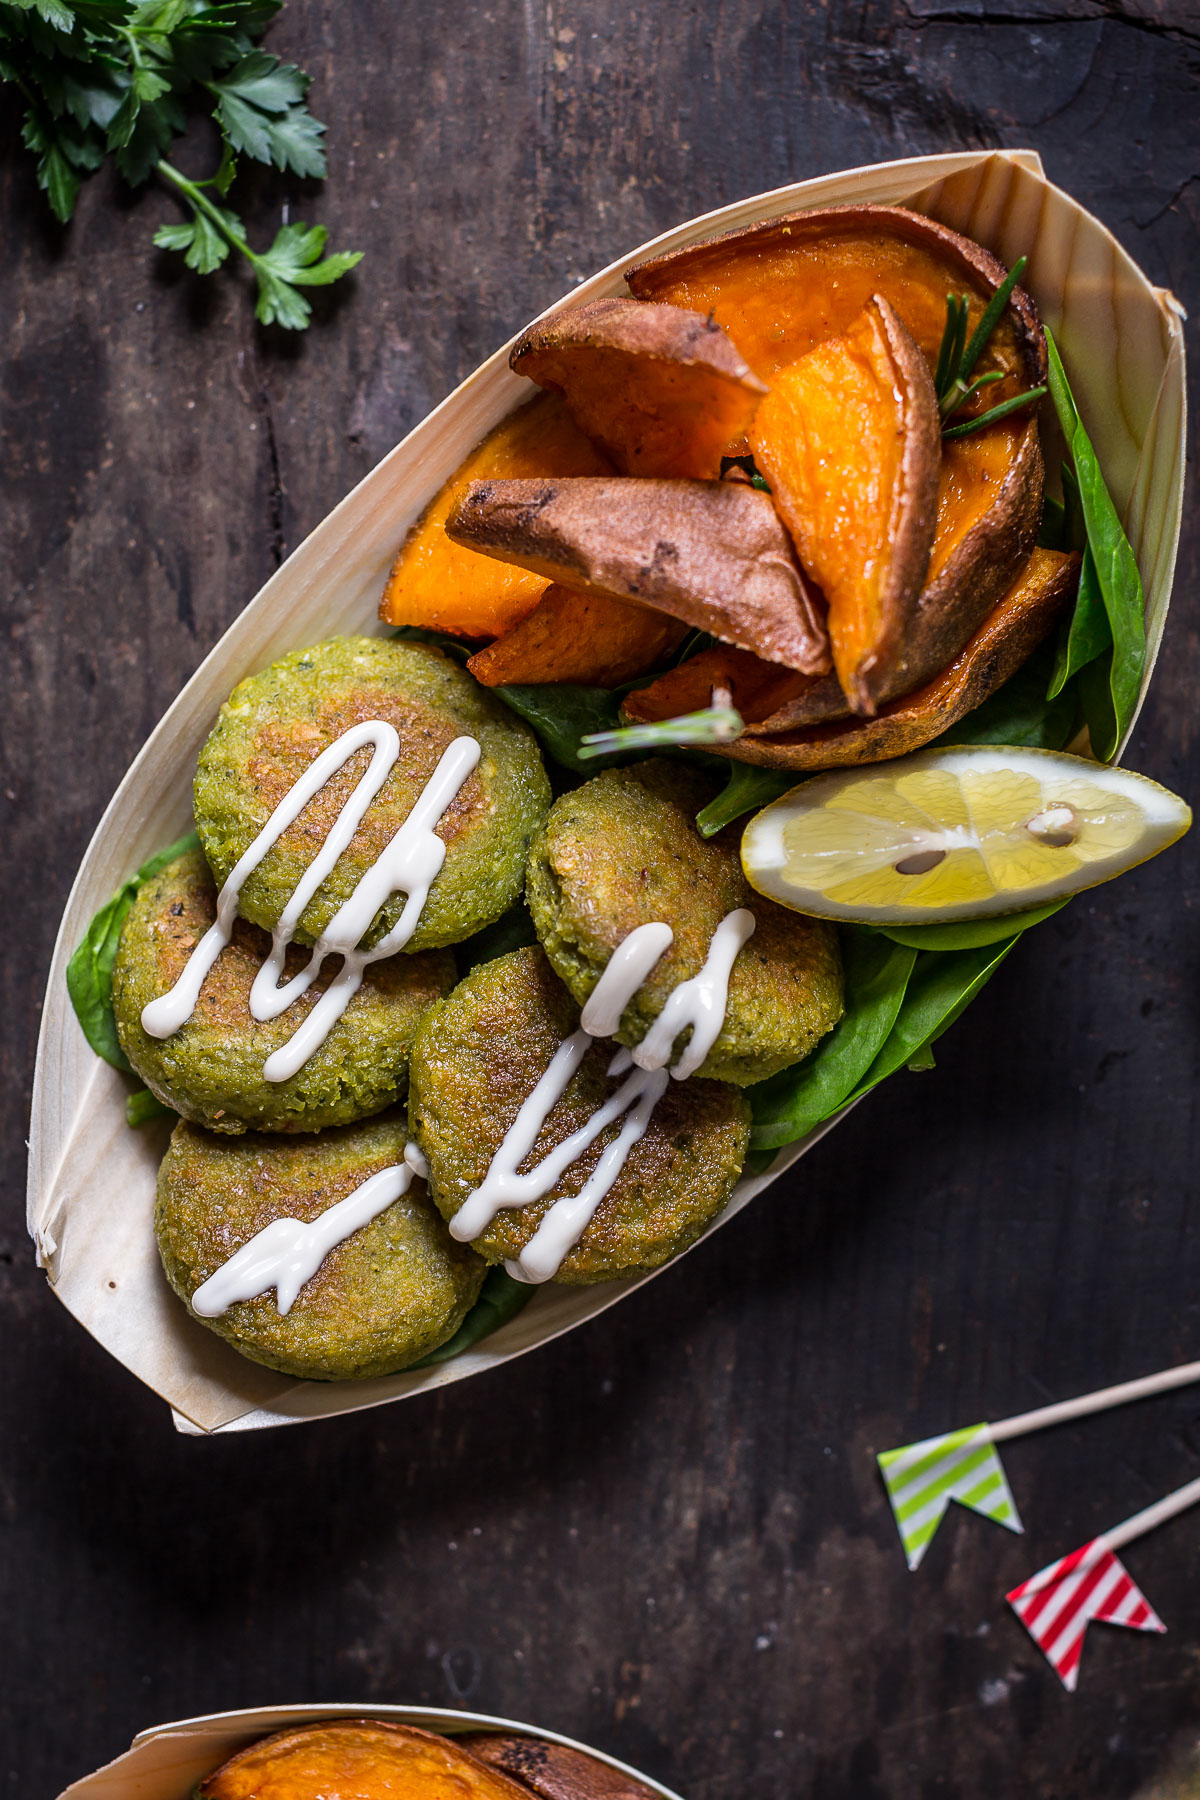 Falafel non fritti facilissimi con salsa tahina allo yogurt e patate dolci al forno - vegan easy falafel with tahini sauce and rosemary baked potatoes 1